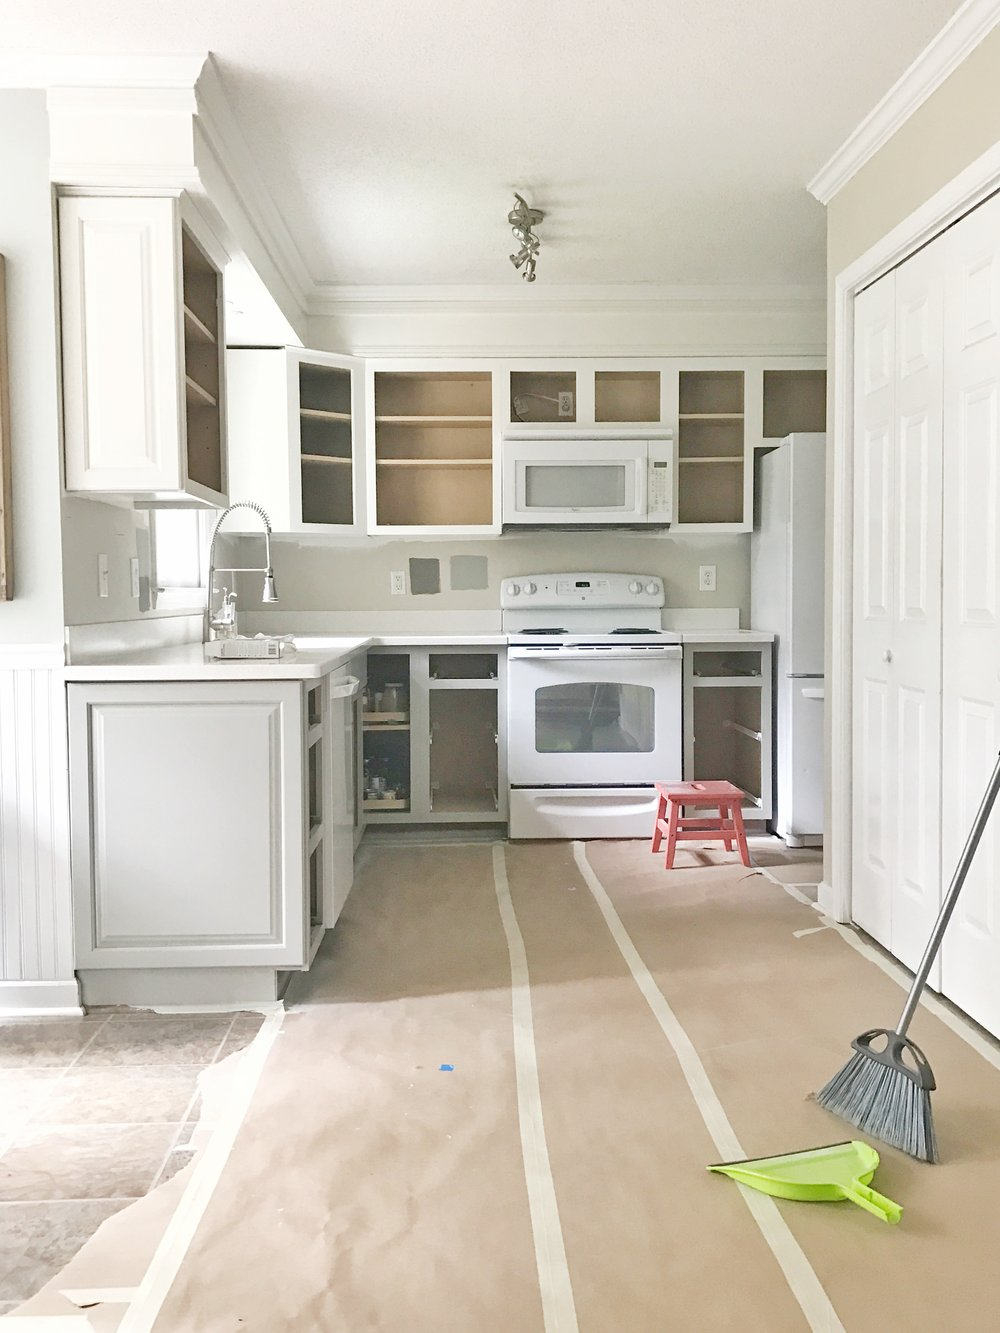 Painted_Kitchen_Cabinets_Sprayer_Bases_White_Gray.JPG